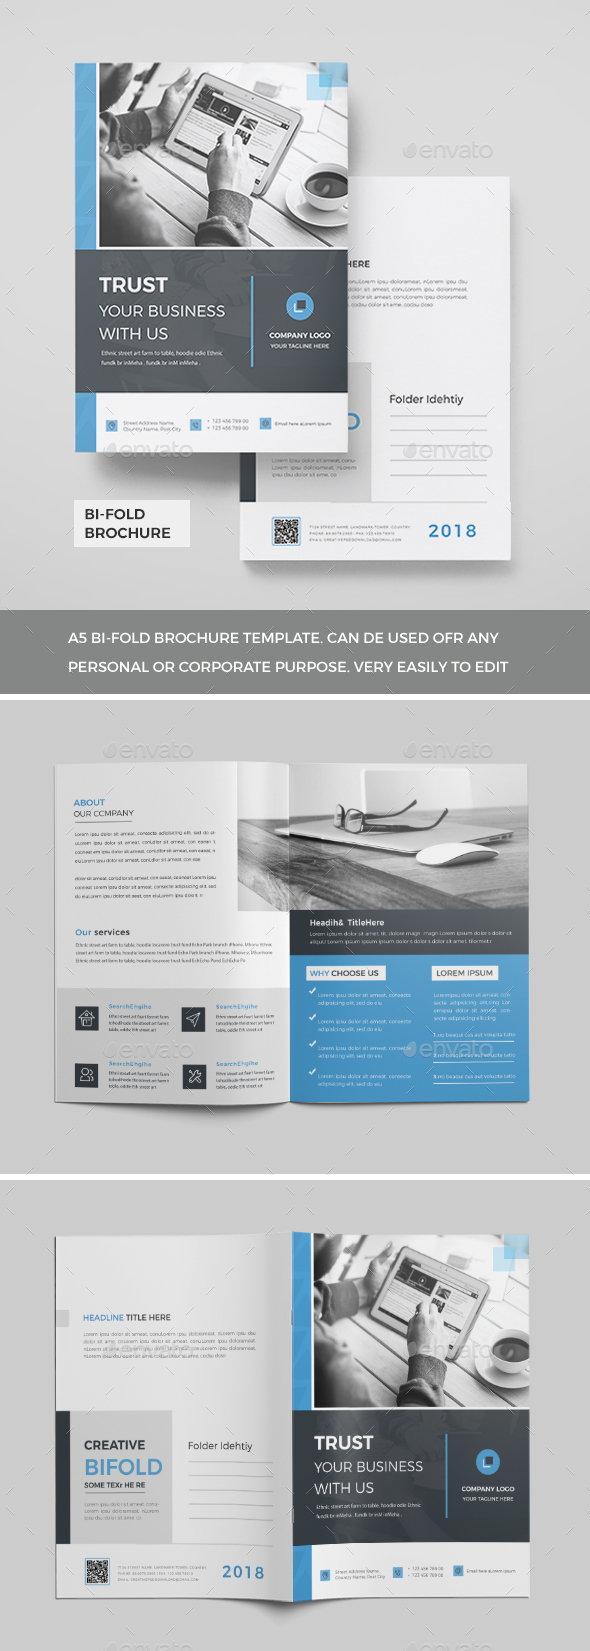 Corporate Brochure Templates From GraphicRiver - Company brochure templates